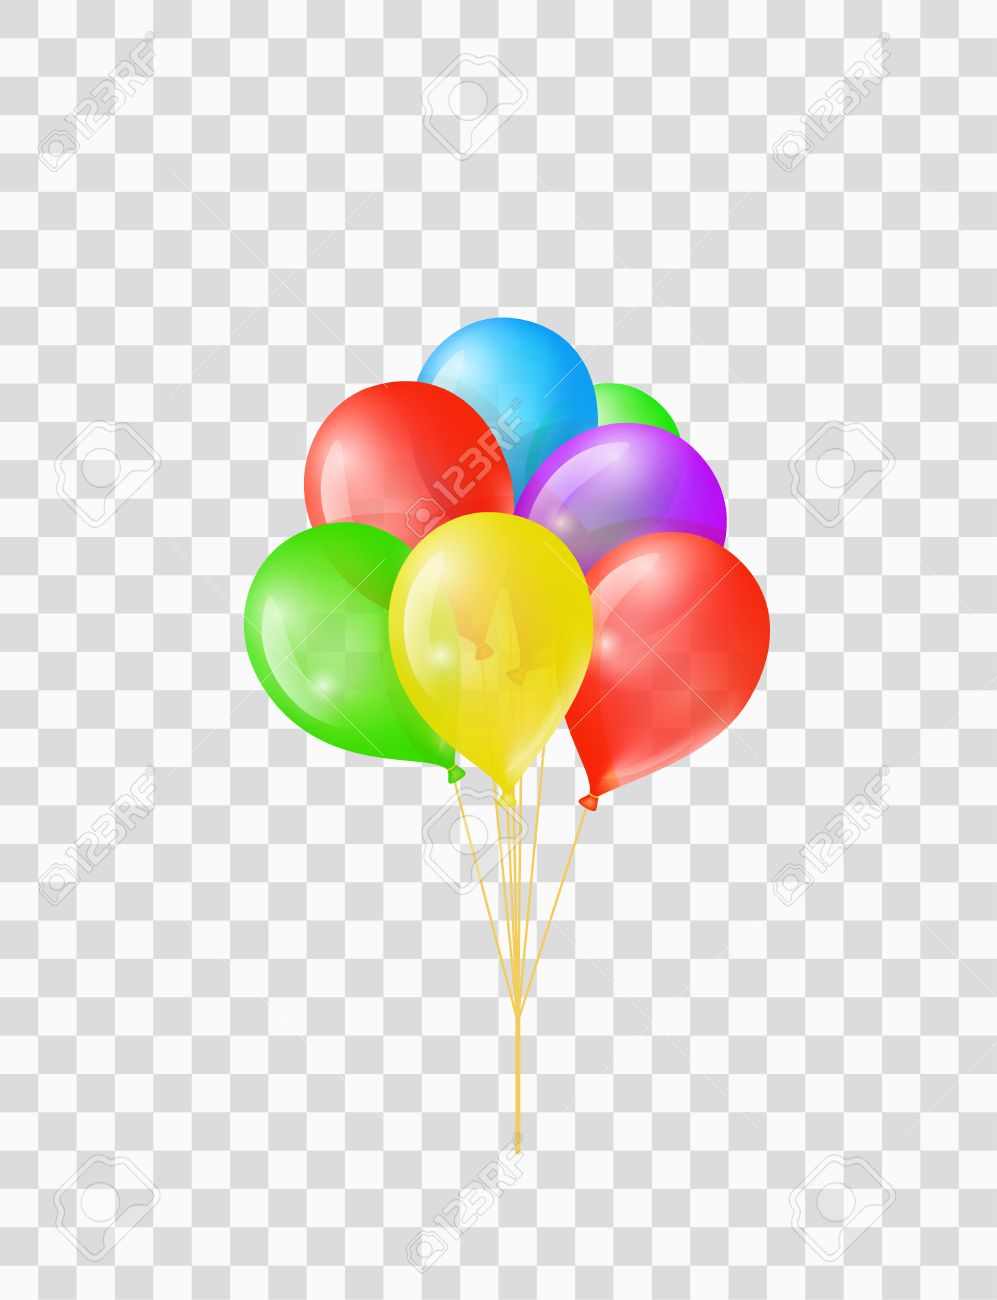 Bunch of colored transparent balloons on chequered background.